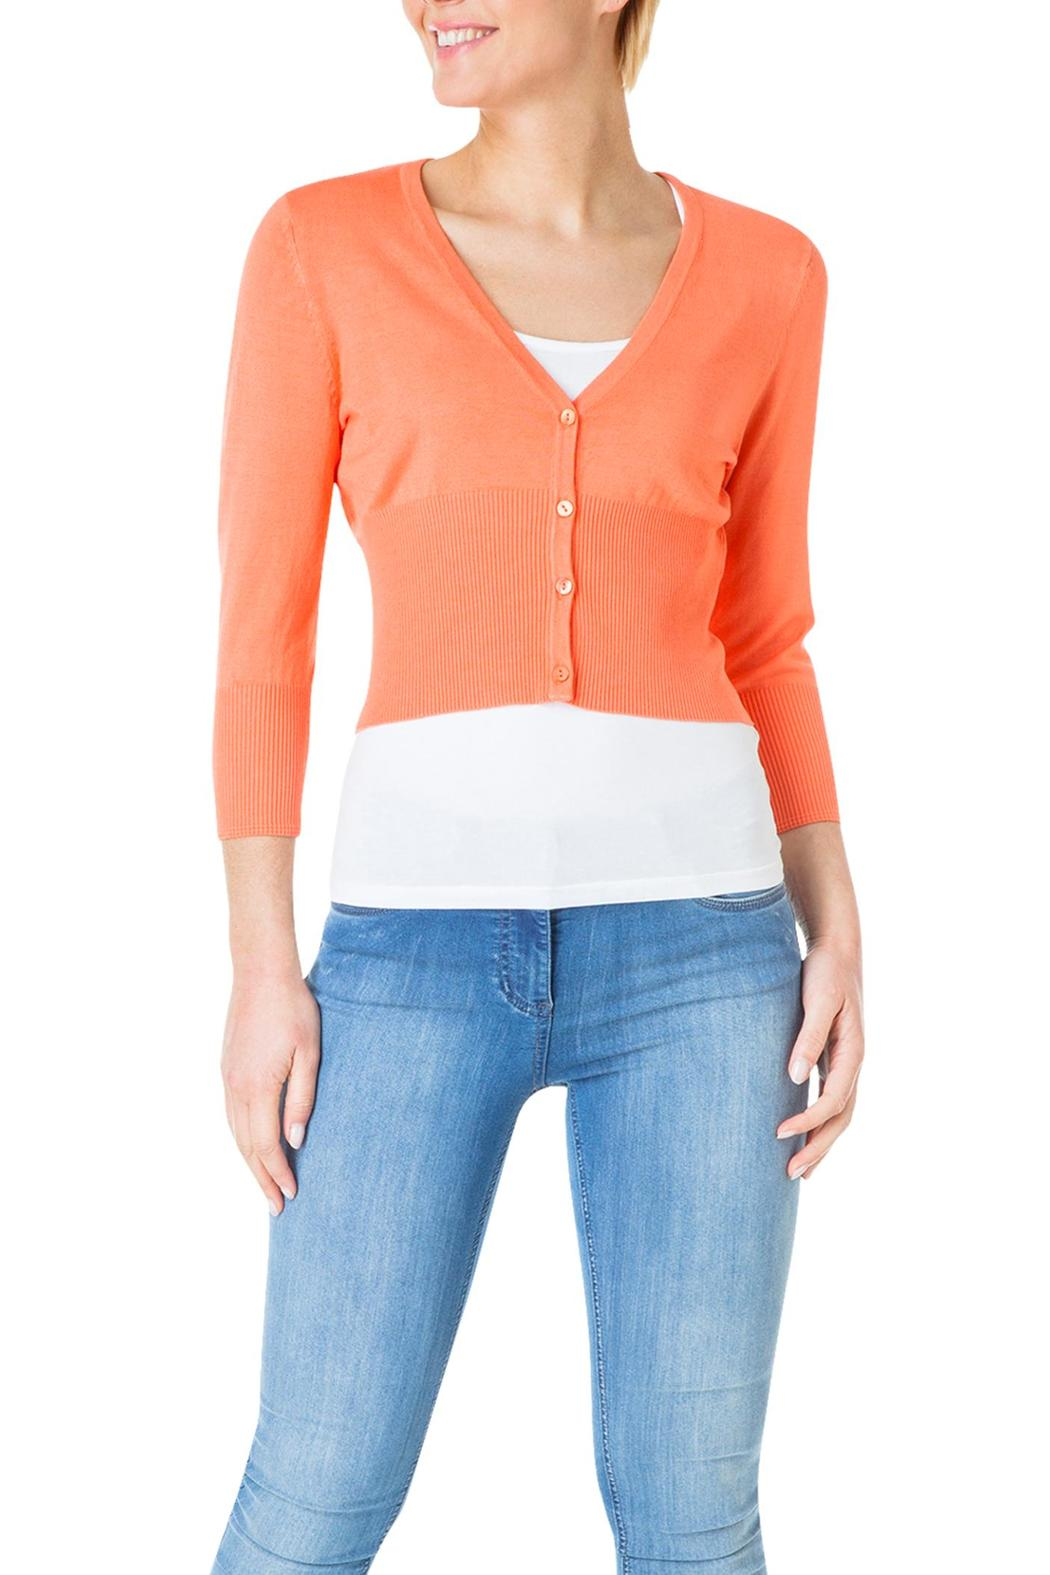 Yest Cropped Cardigan Sweater from Washington by Gracie's — Shoptiques